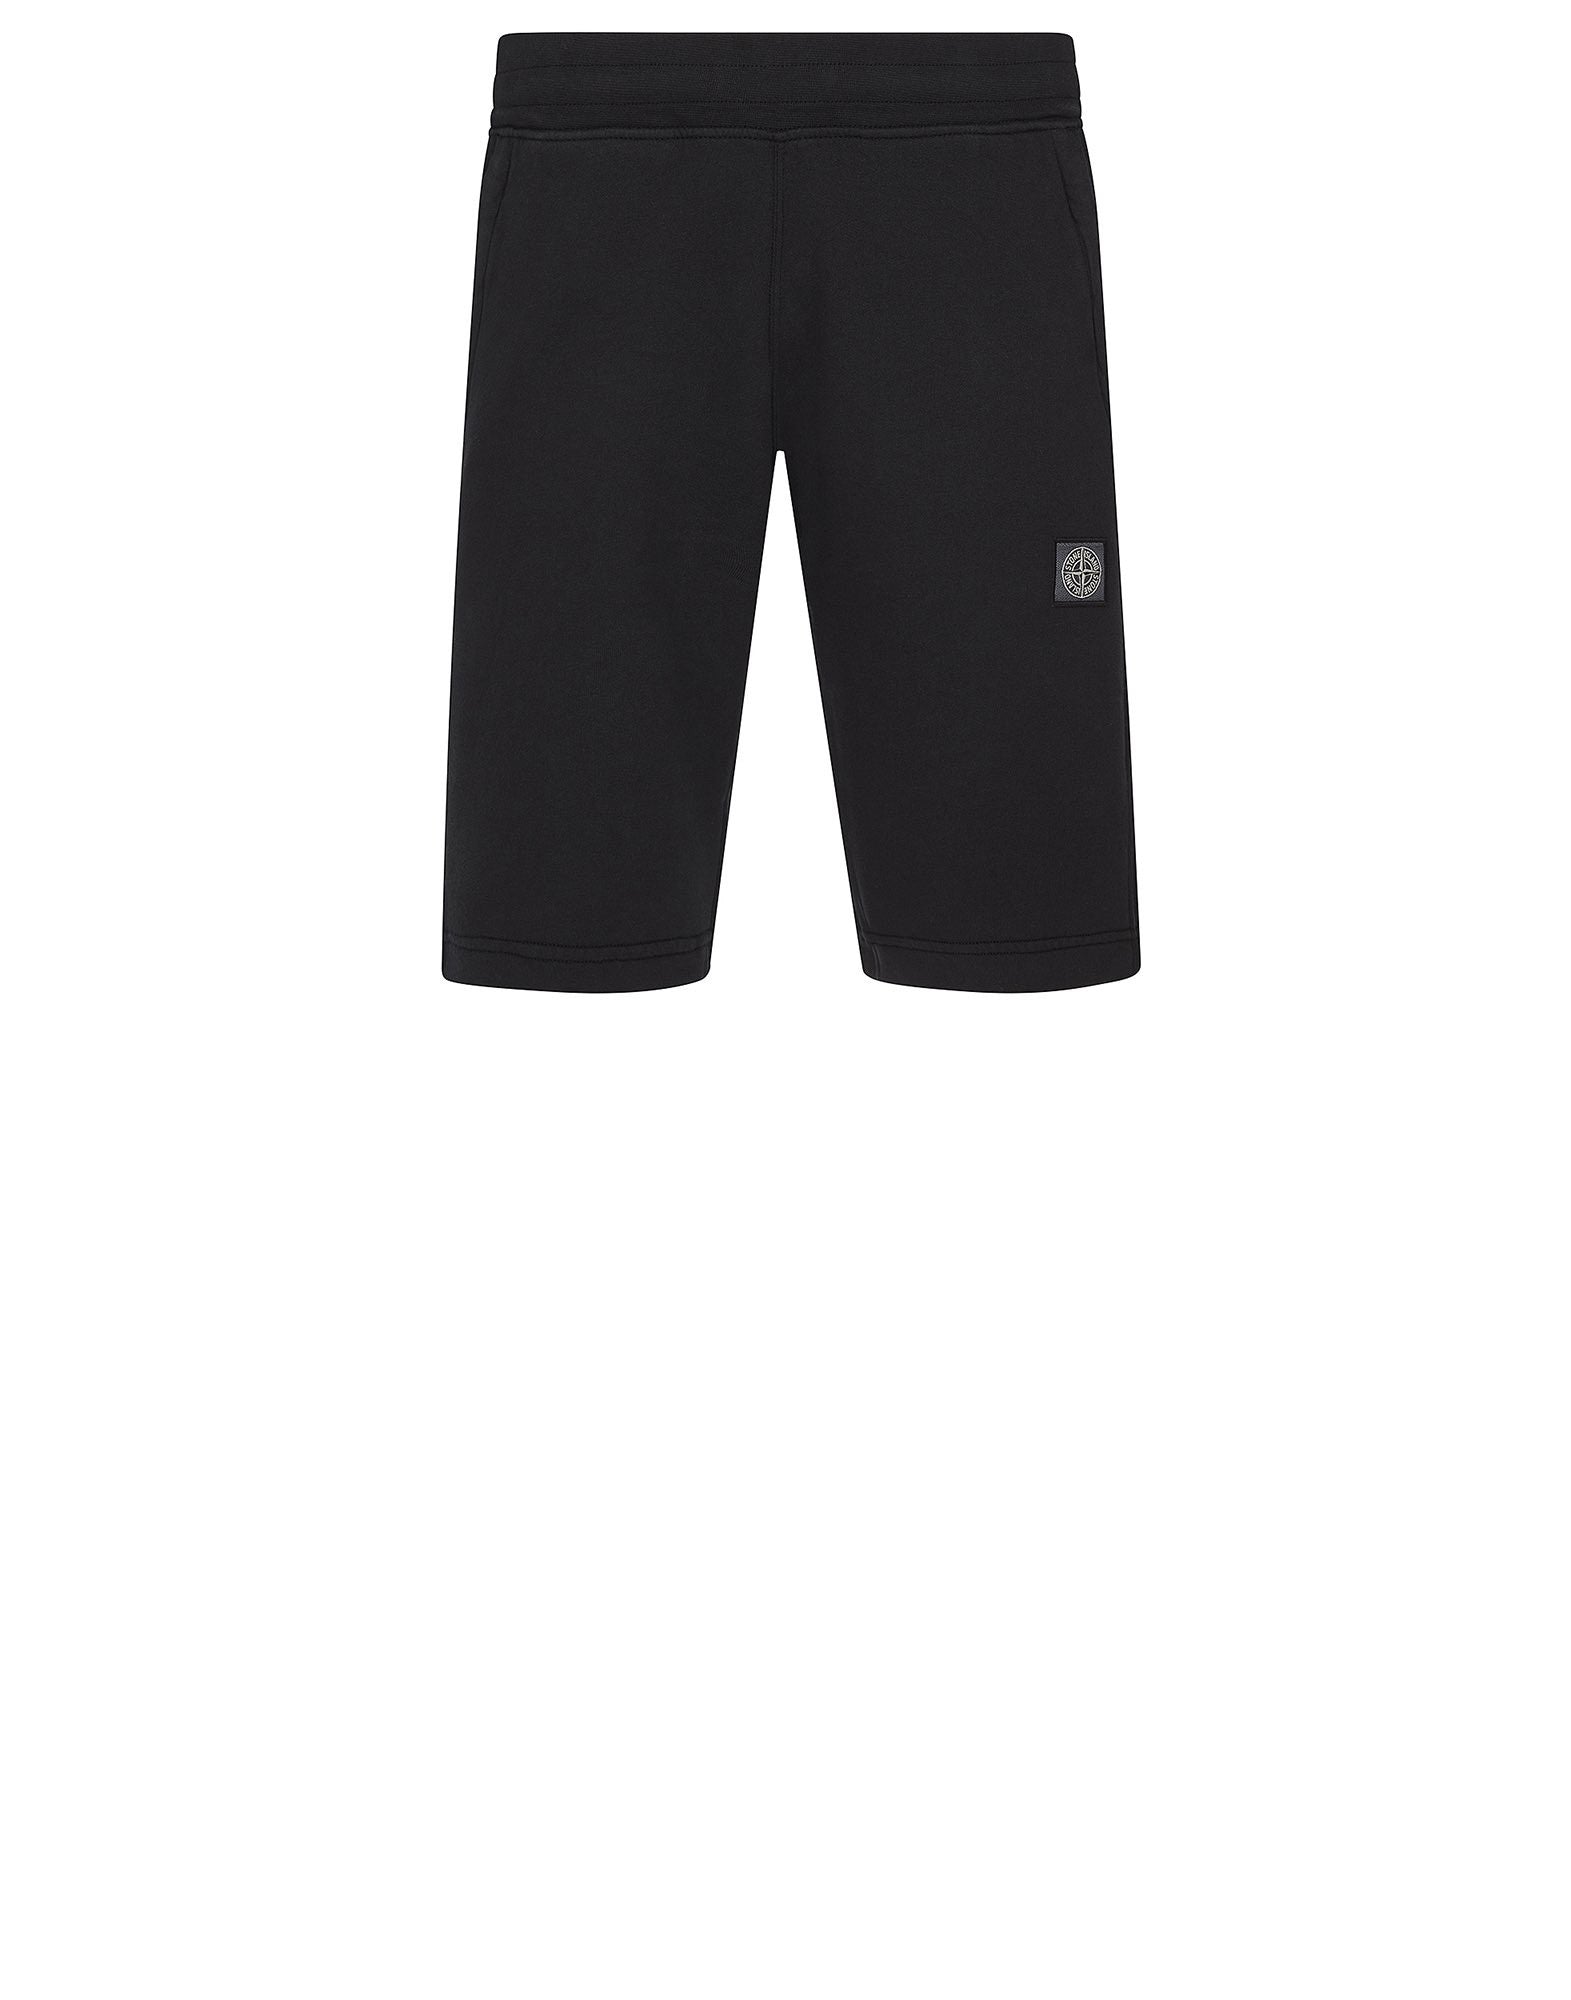 65151 Bermuda Shorts in Black